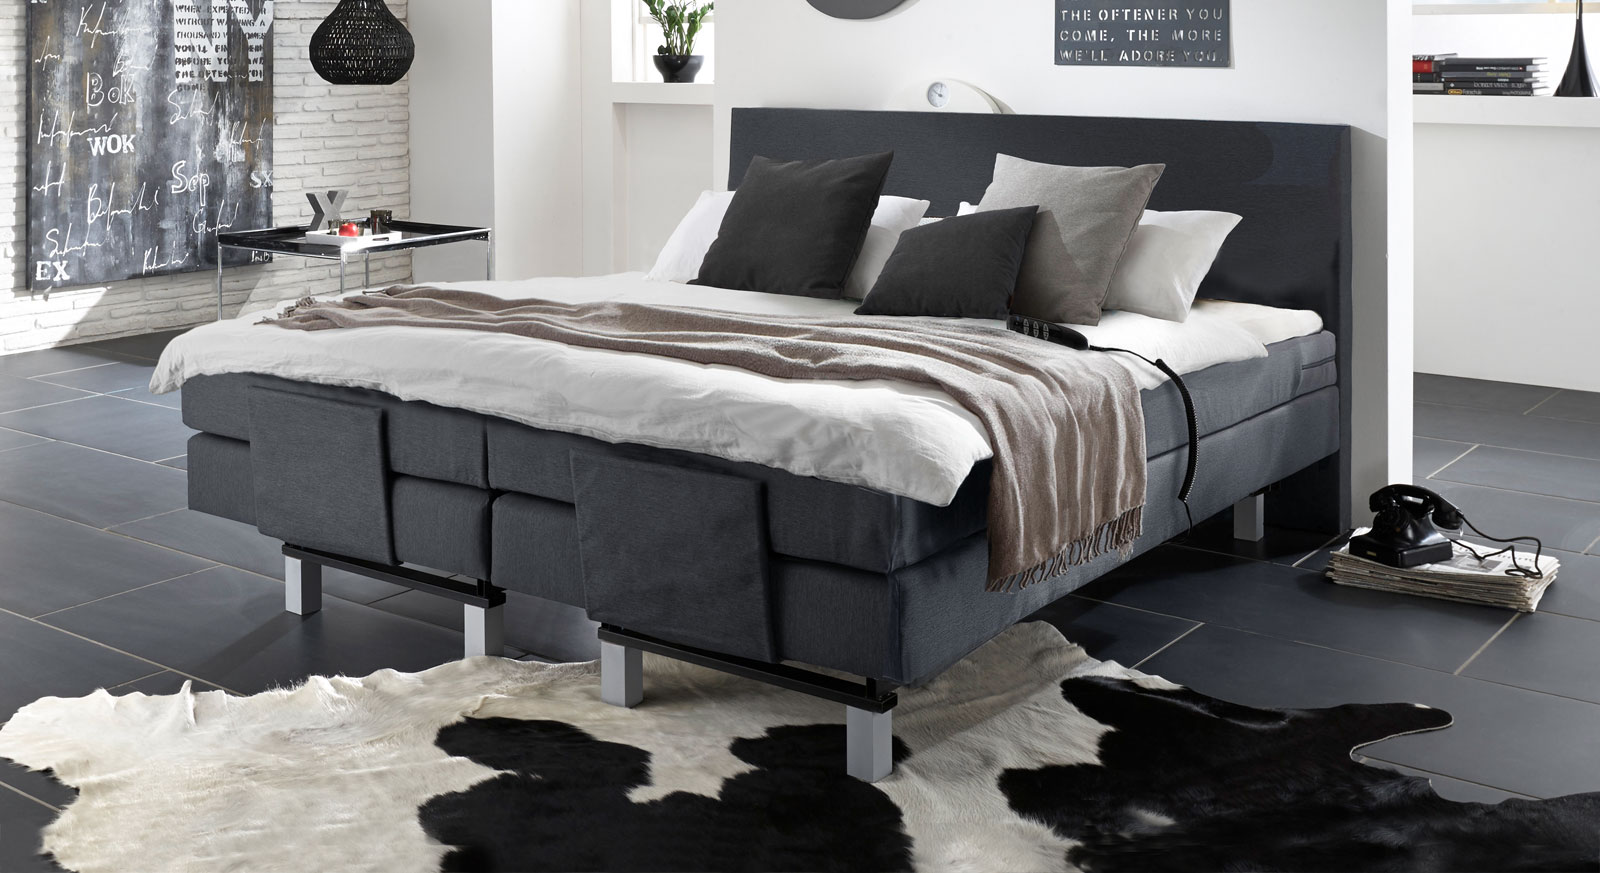 ecksofa elektrisch verstellbar inspirierendes design f r wohnm bel. Black Bedroom Furniture Sets. Home Design Ideas